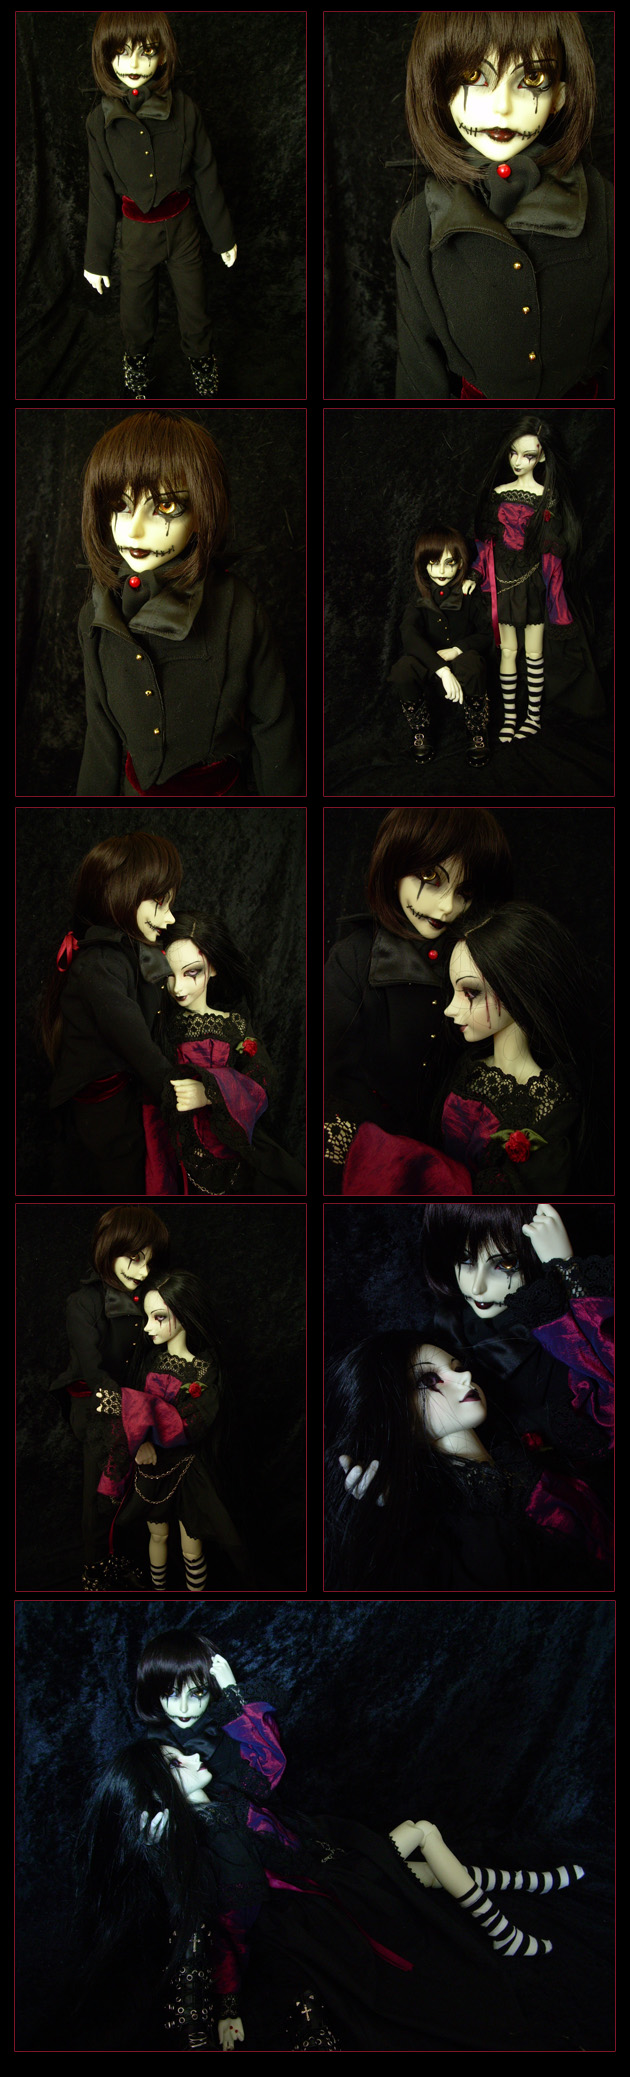 [DeadDoll][Mnf DES] Family - portraits [p.24] Jacketmimi